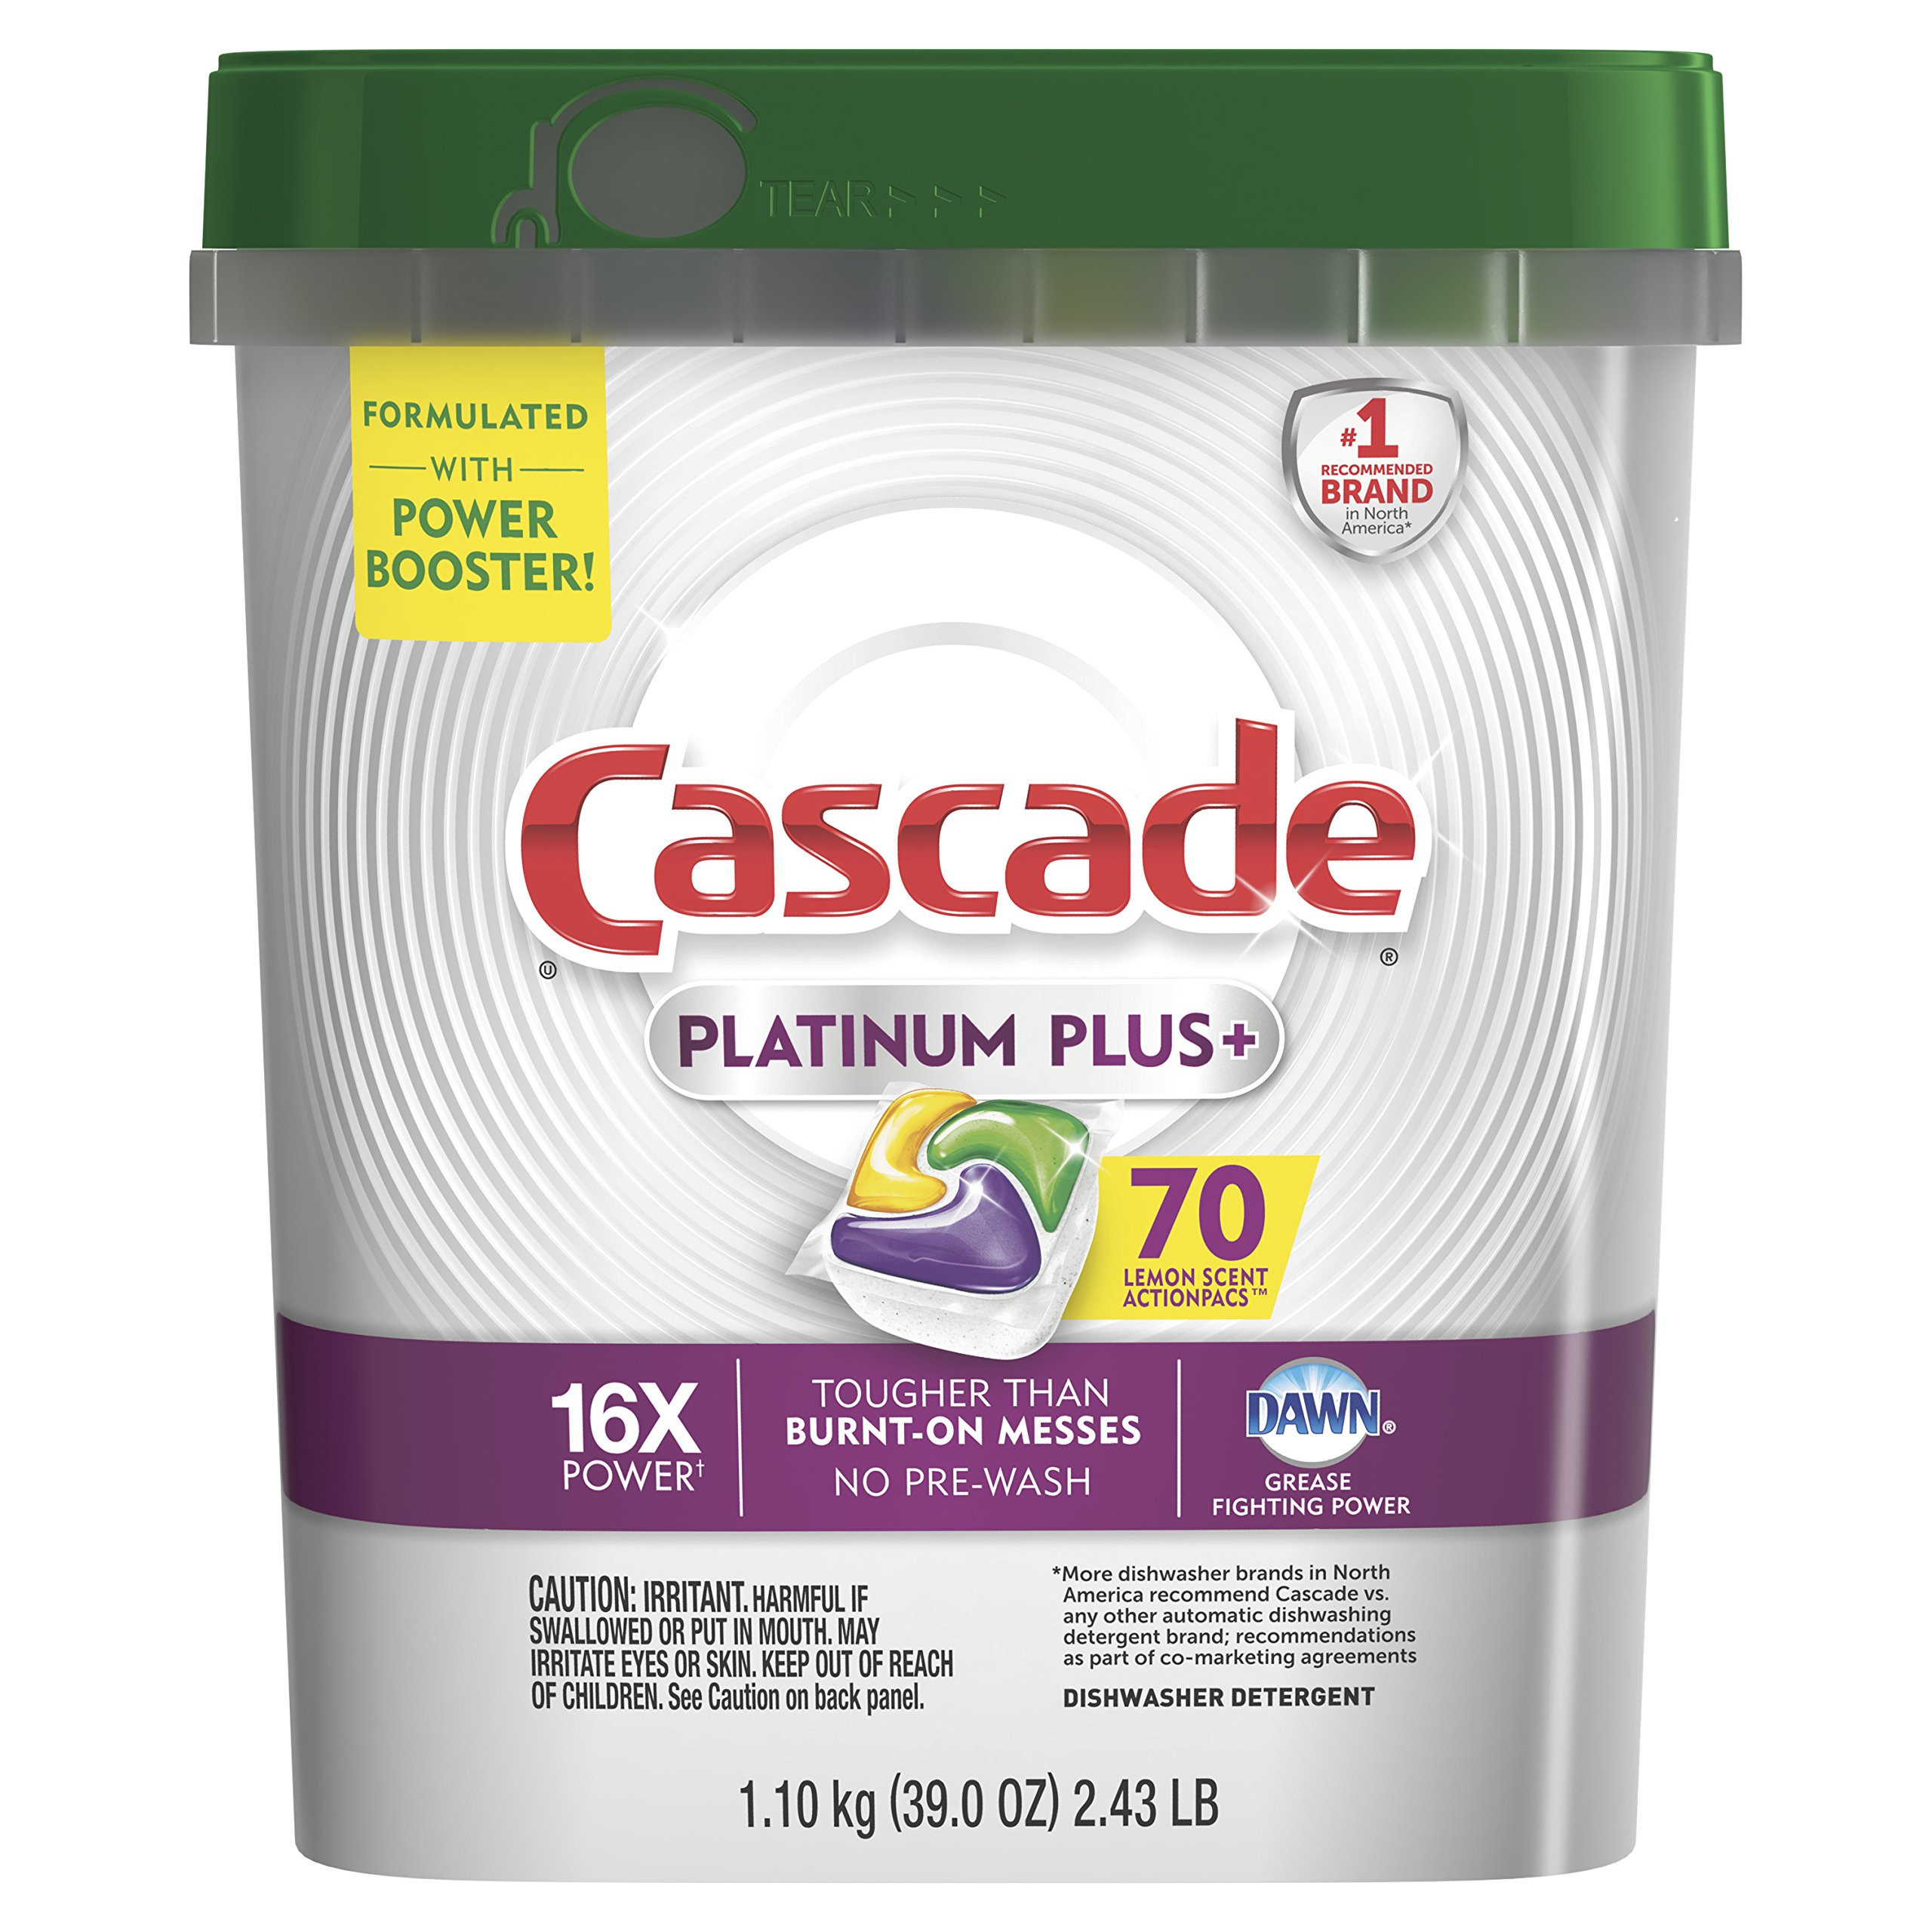 Cascade Platinum Plus Dishwasher Detergent Actionpacs, Lemon, 70 Count